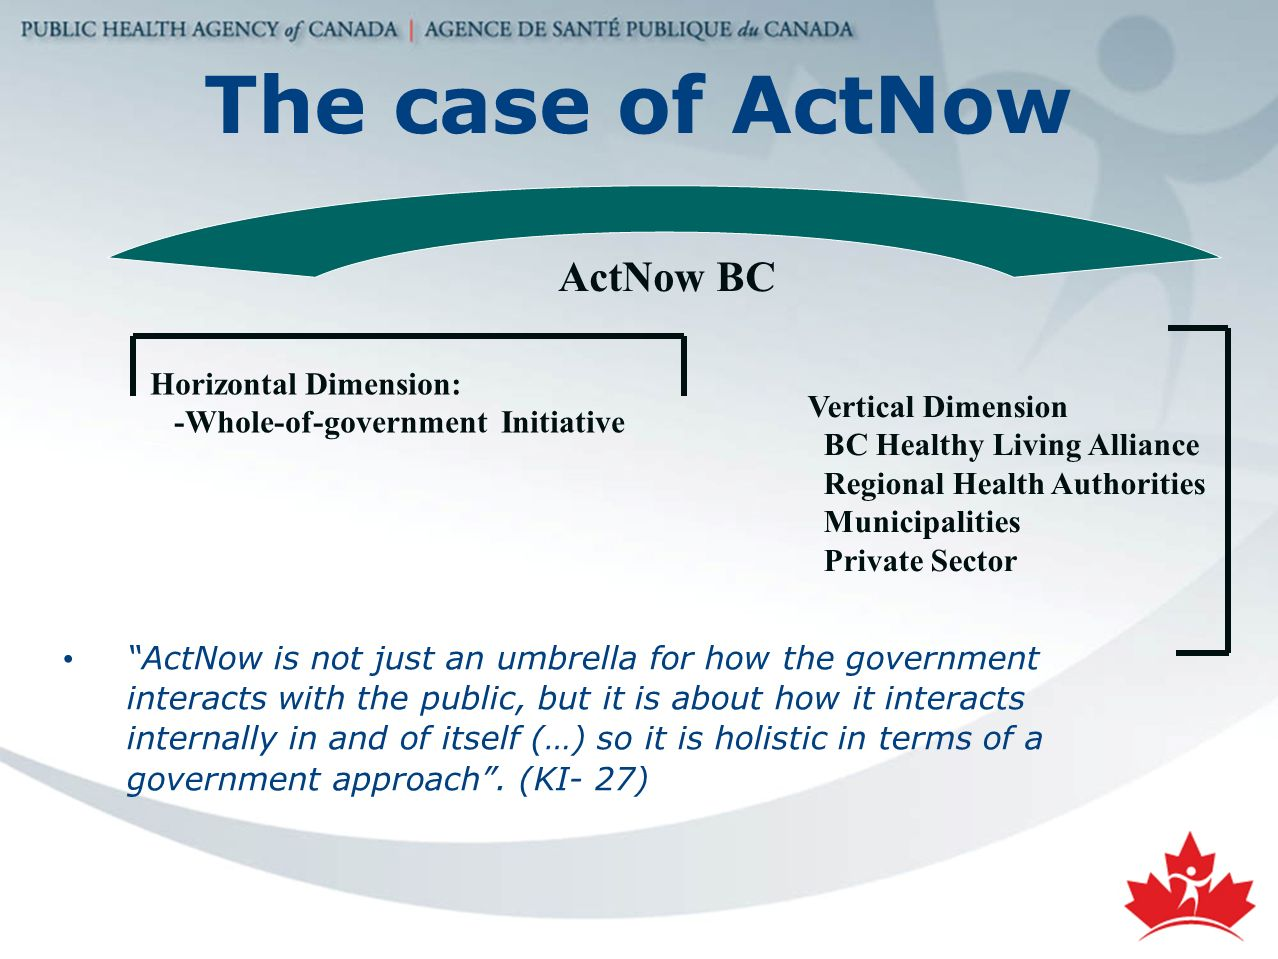 The case of ActNow ActNow is not just an umbrella for how the government interacts with the public, but it is about how it interacts internally in and of itself (…) so it is holistic in terms of a government approach.